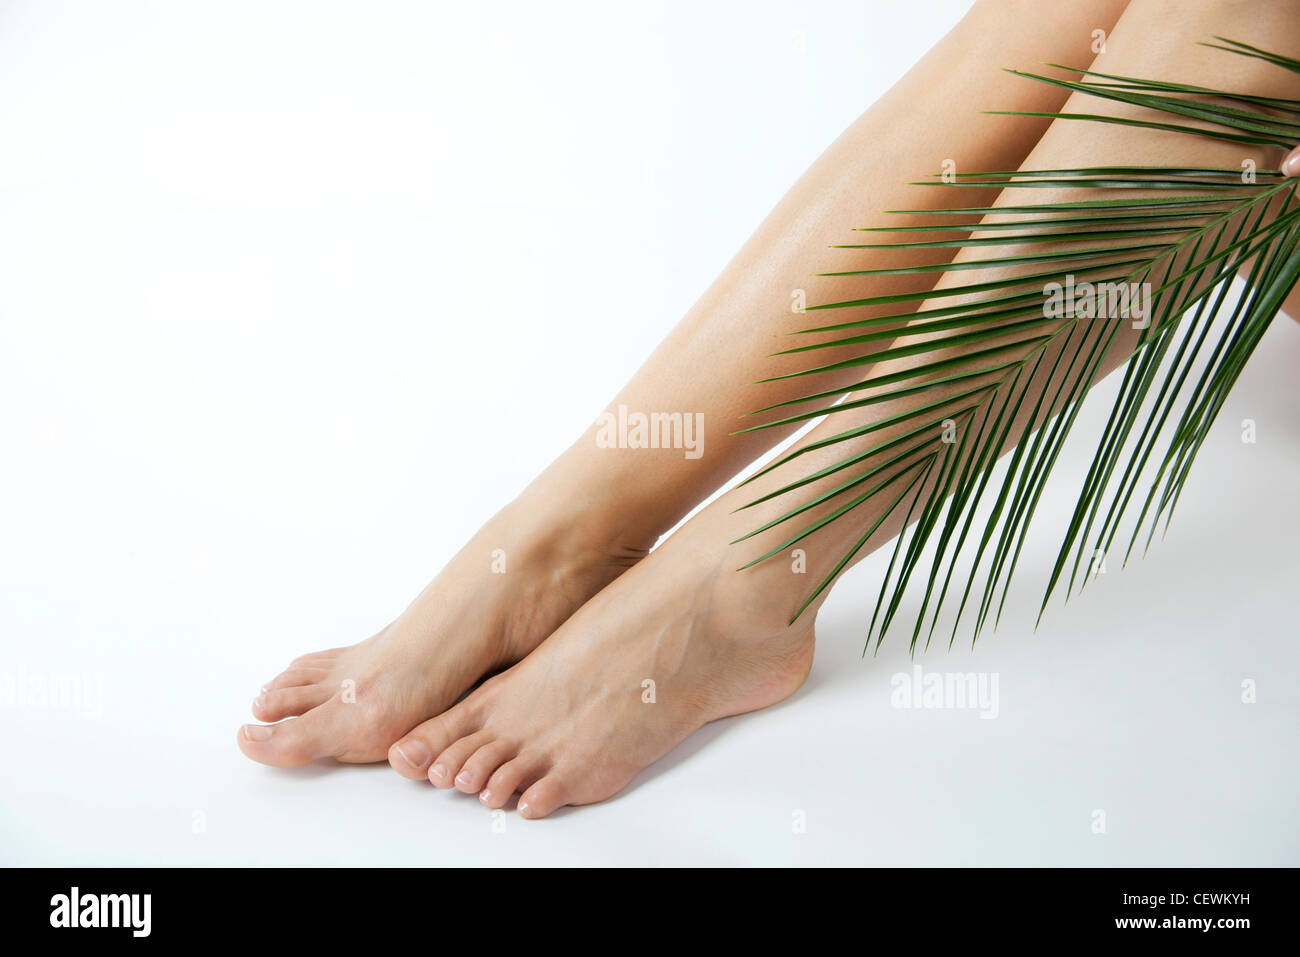 Woman holding palm frond against bare legs, cropped - Stock Image